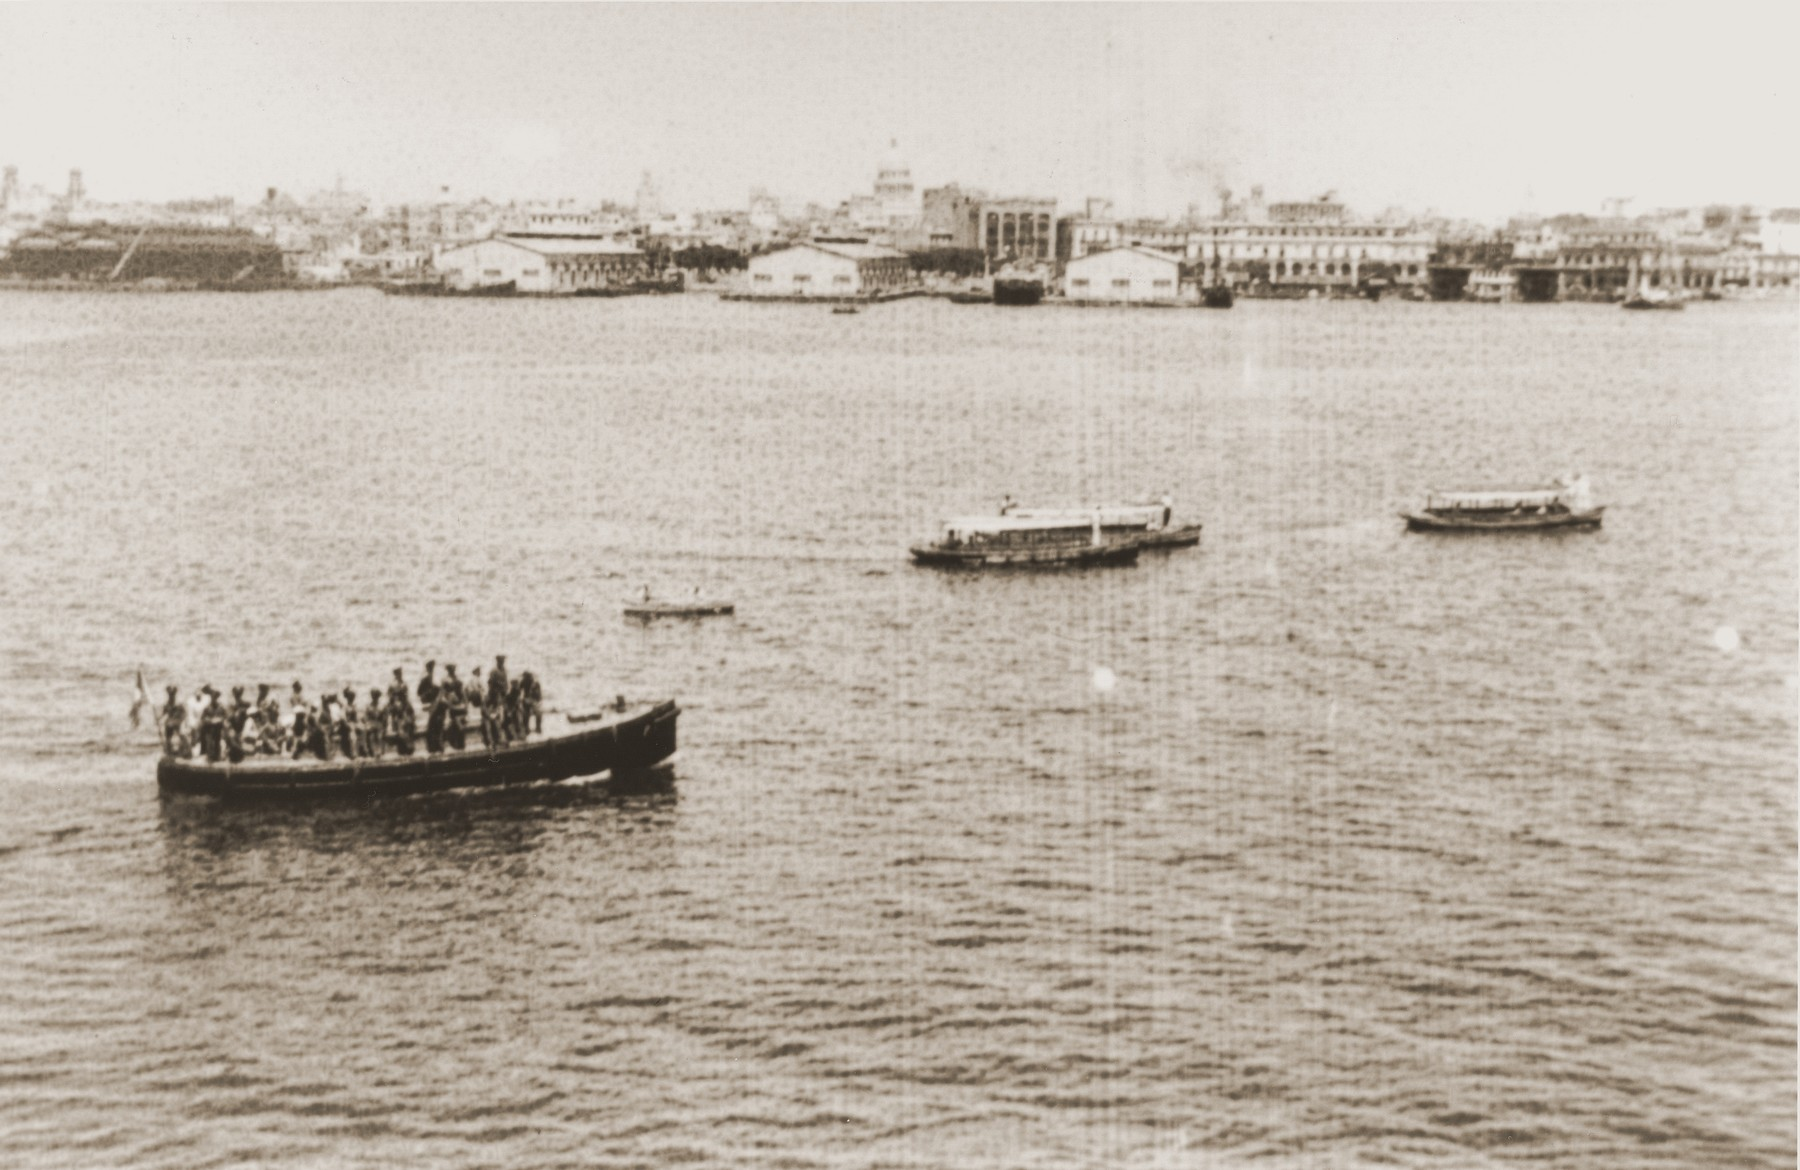 View of Havana harbor with several small boats carrying relatives of St. Louis passengers, Cuban officials and other negotiators seeking to resolve the St. Louis crisis.